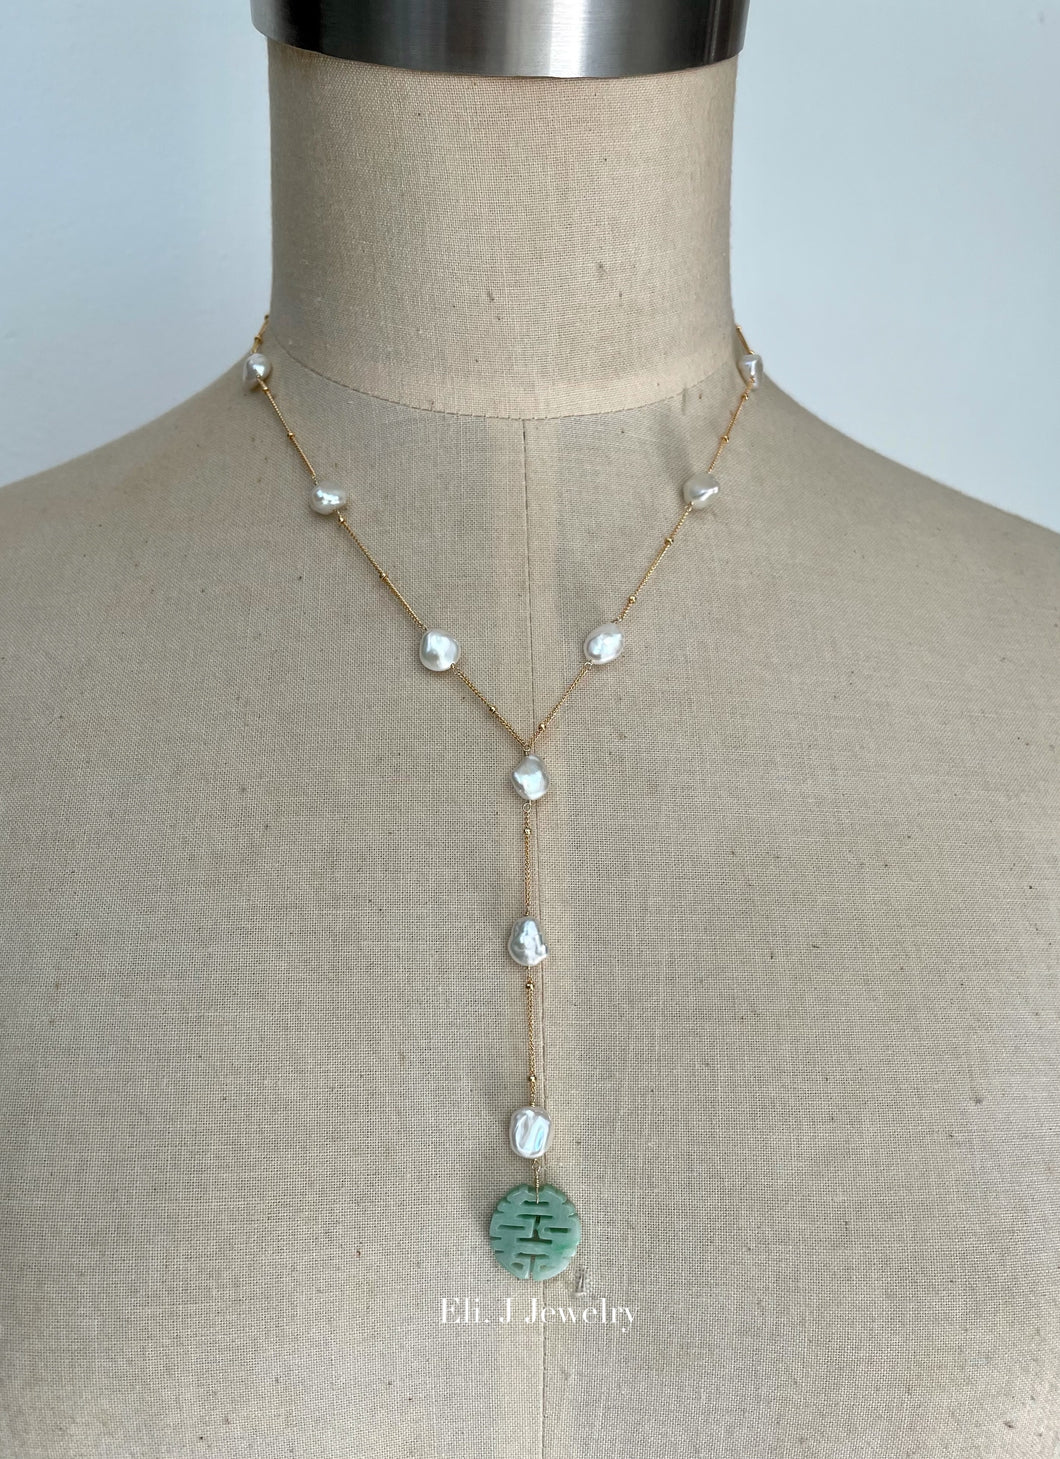 Eli. J Exclusive: 喜喜 Mint Green Jade, Keshi Pearls 14kGF Necklace